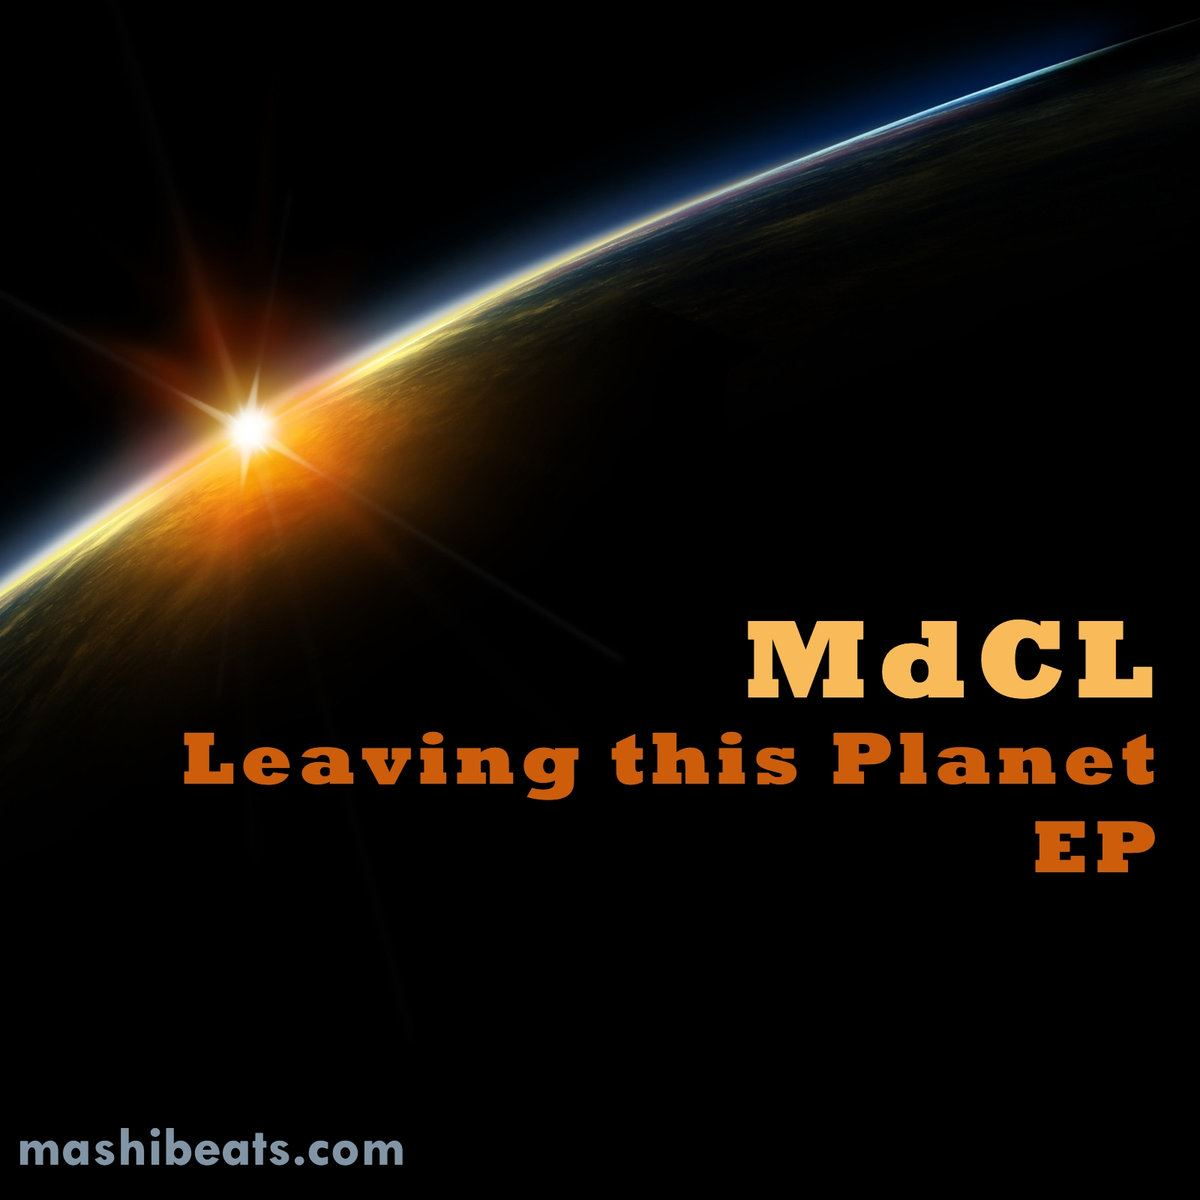 mdcl-leaving-this-planet